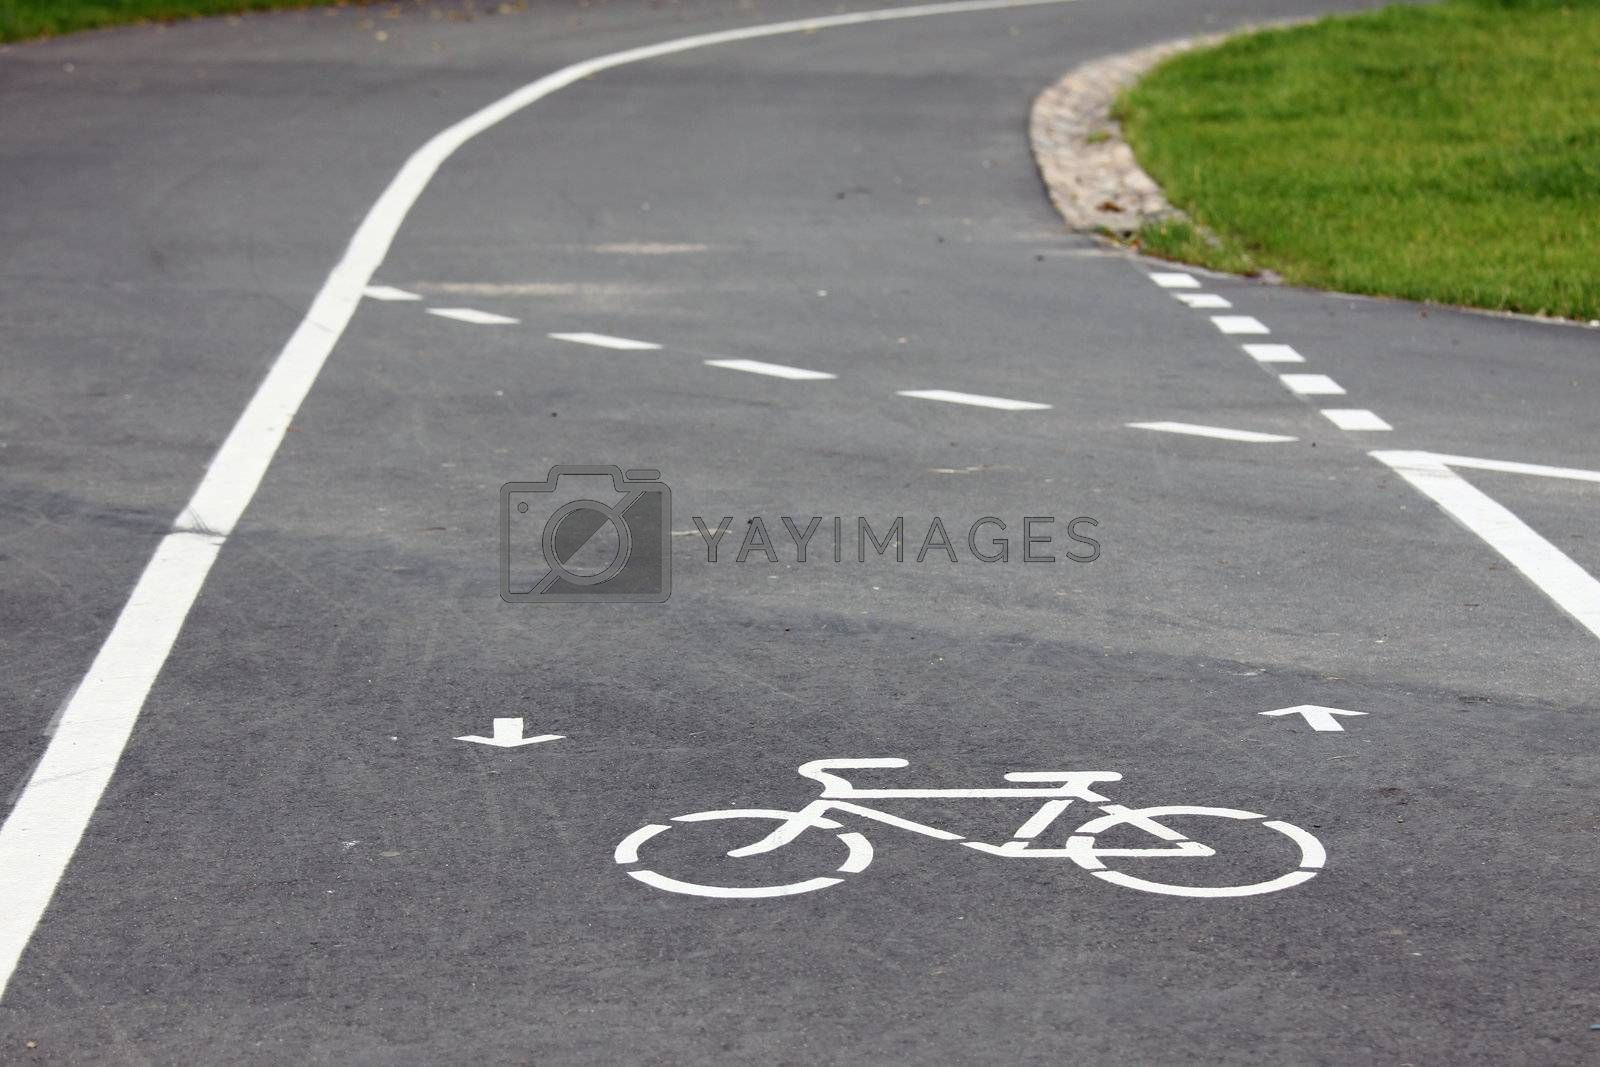 Bicycle route sign on the road and arrows pointing direction